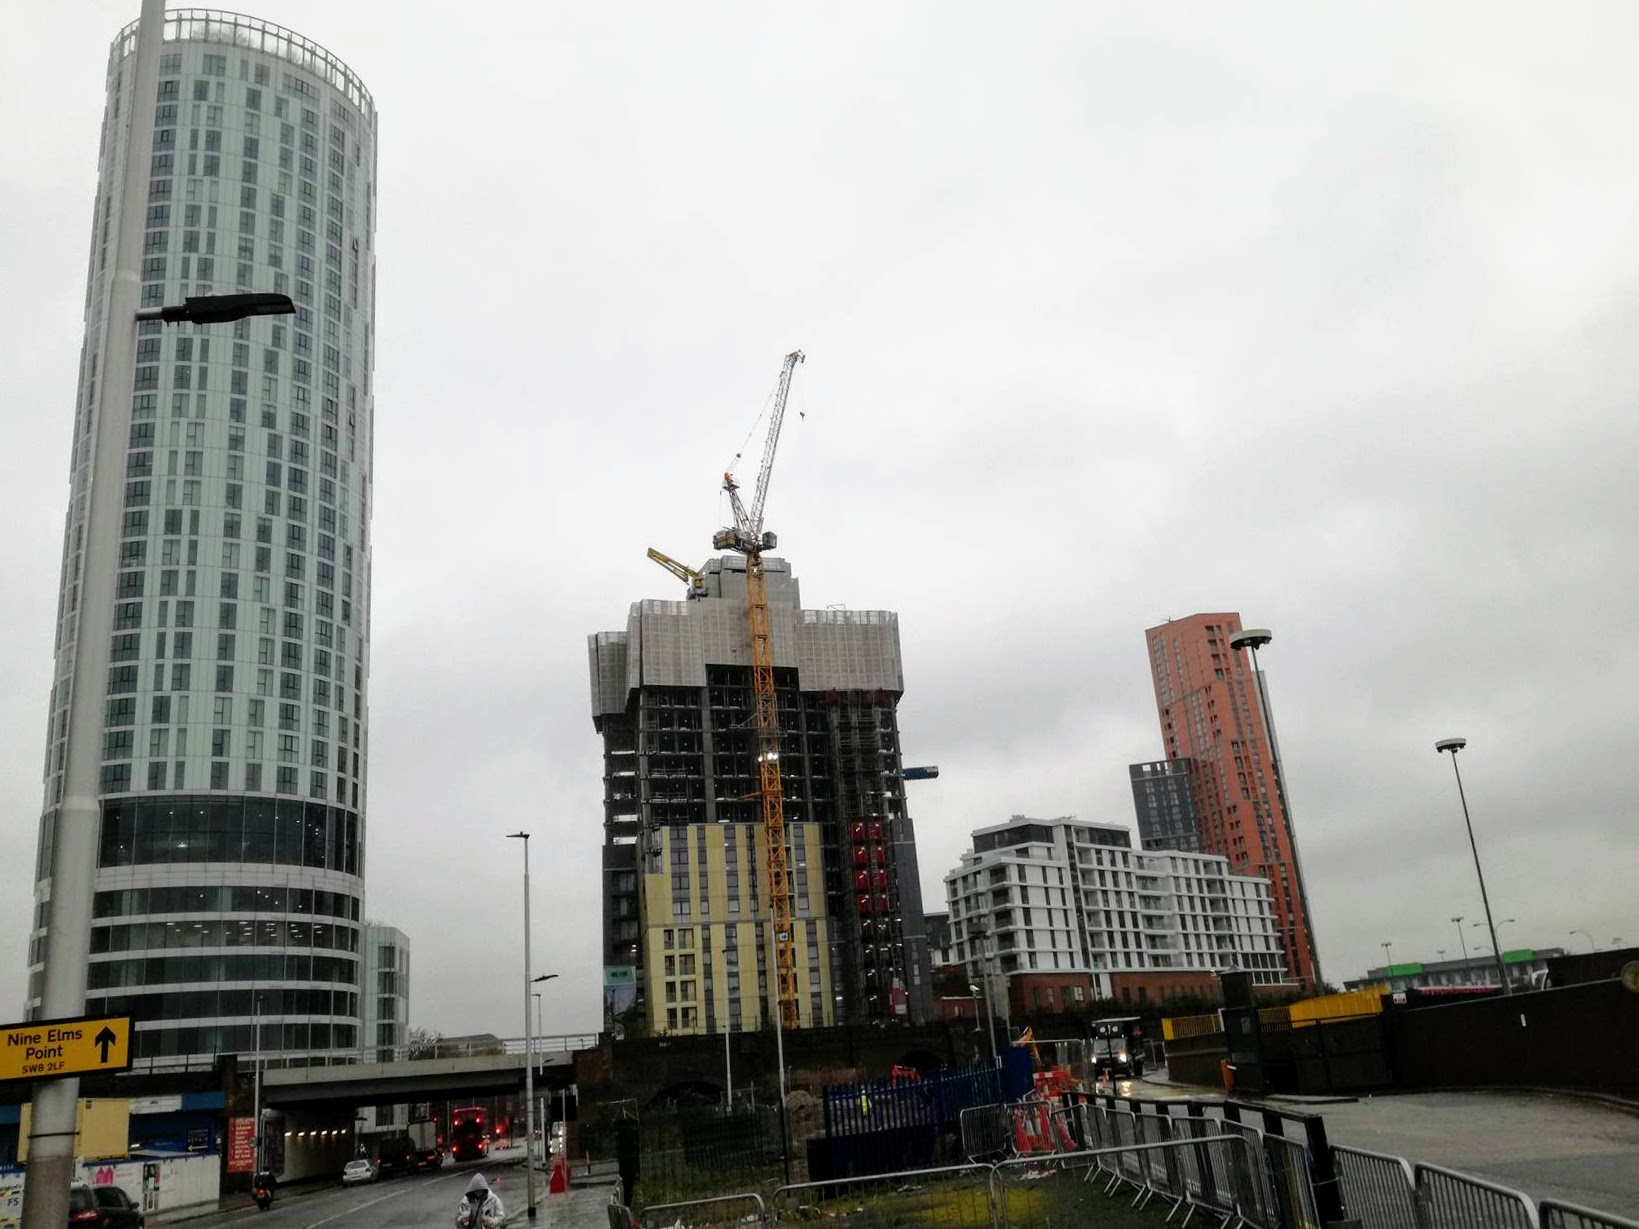 Nine Elms, London is changing its appearance with contribution of Sipral